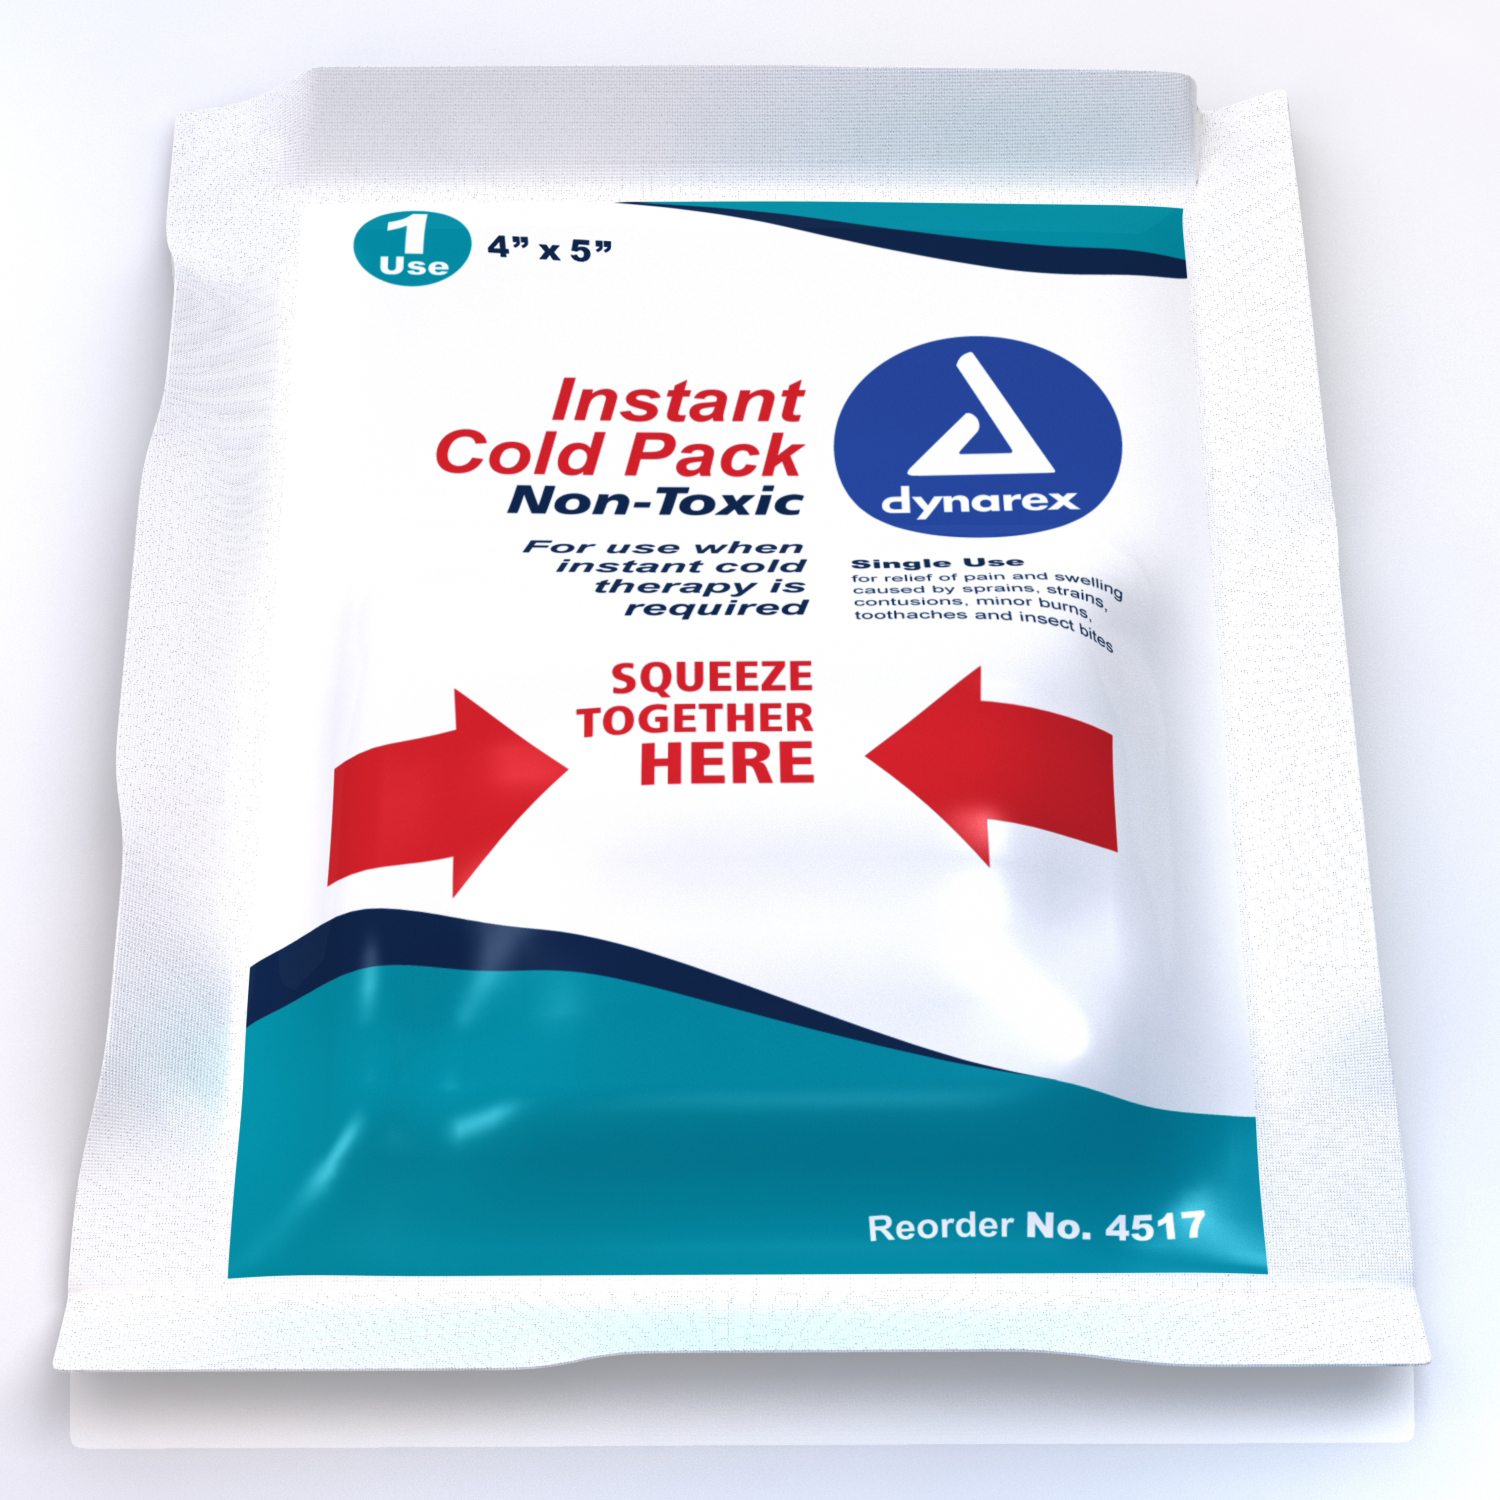 Instant Ice Pack 4x5 Non Toxic image